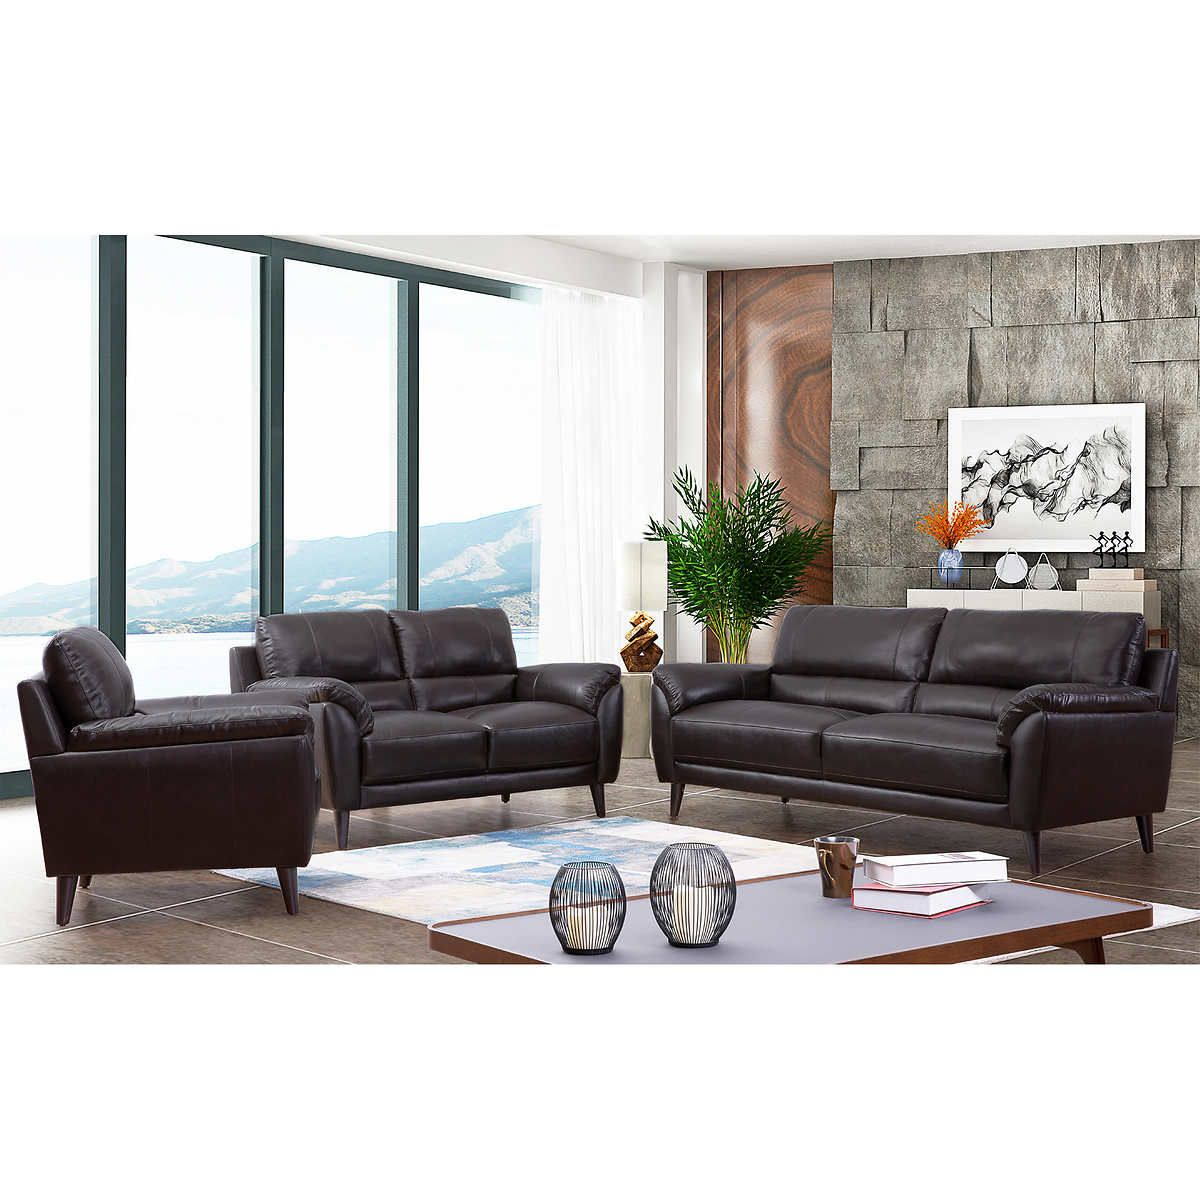 2293 Best Images About Leather Sofas And Living Room: Zamora 3-piece Leather Set In 2020